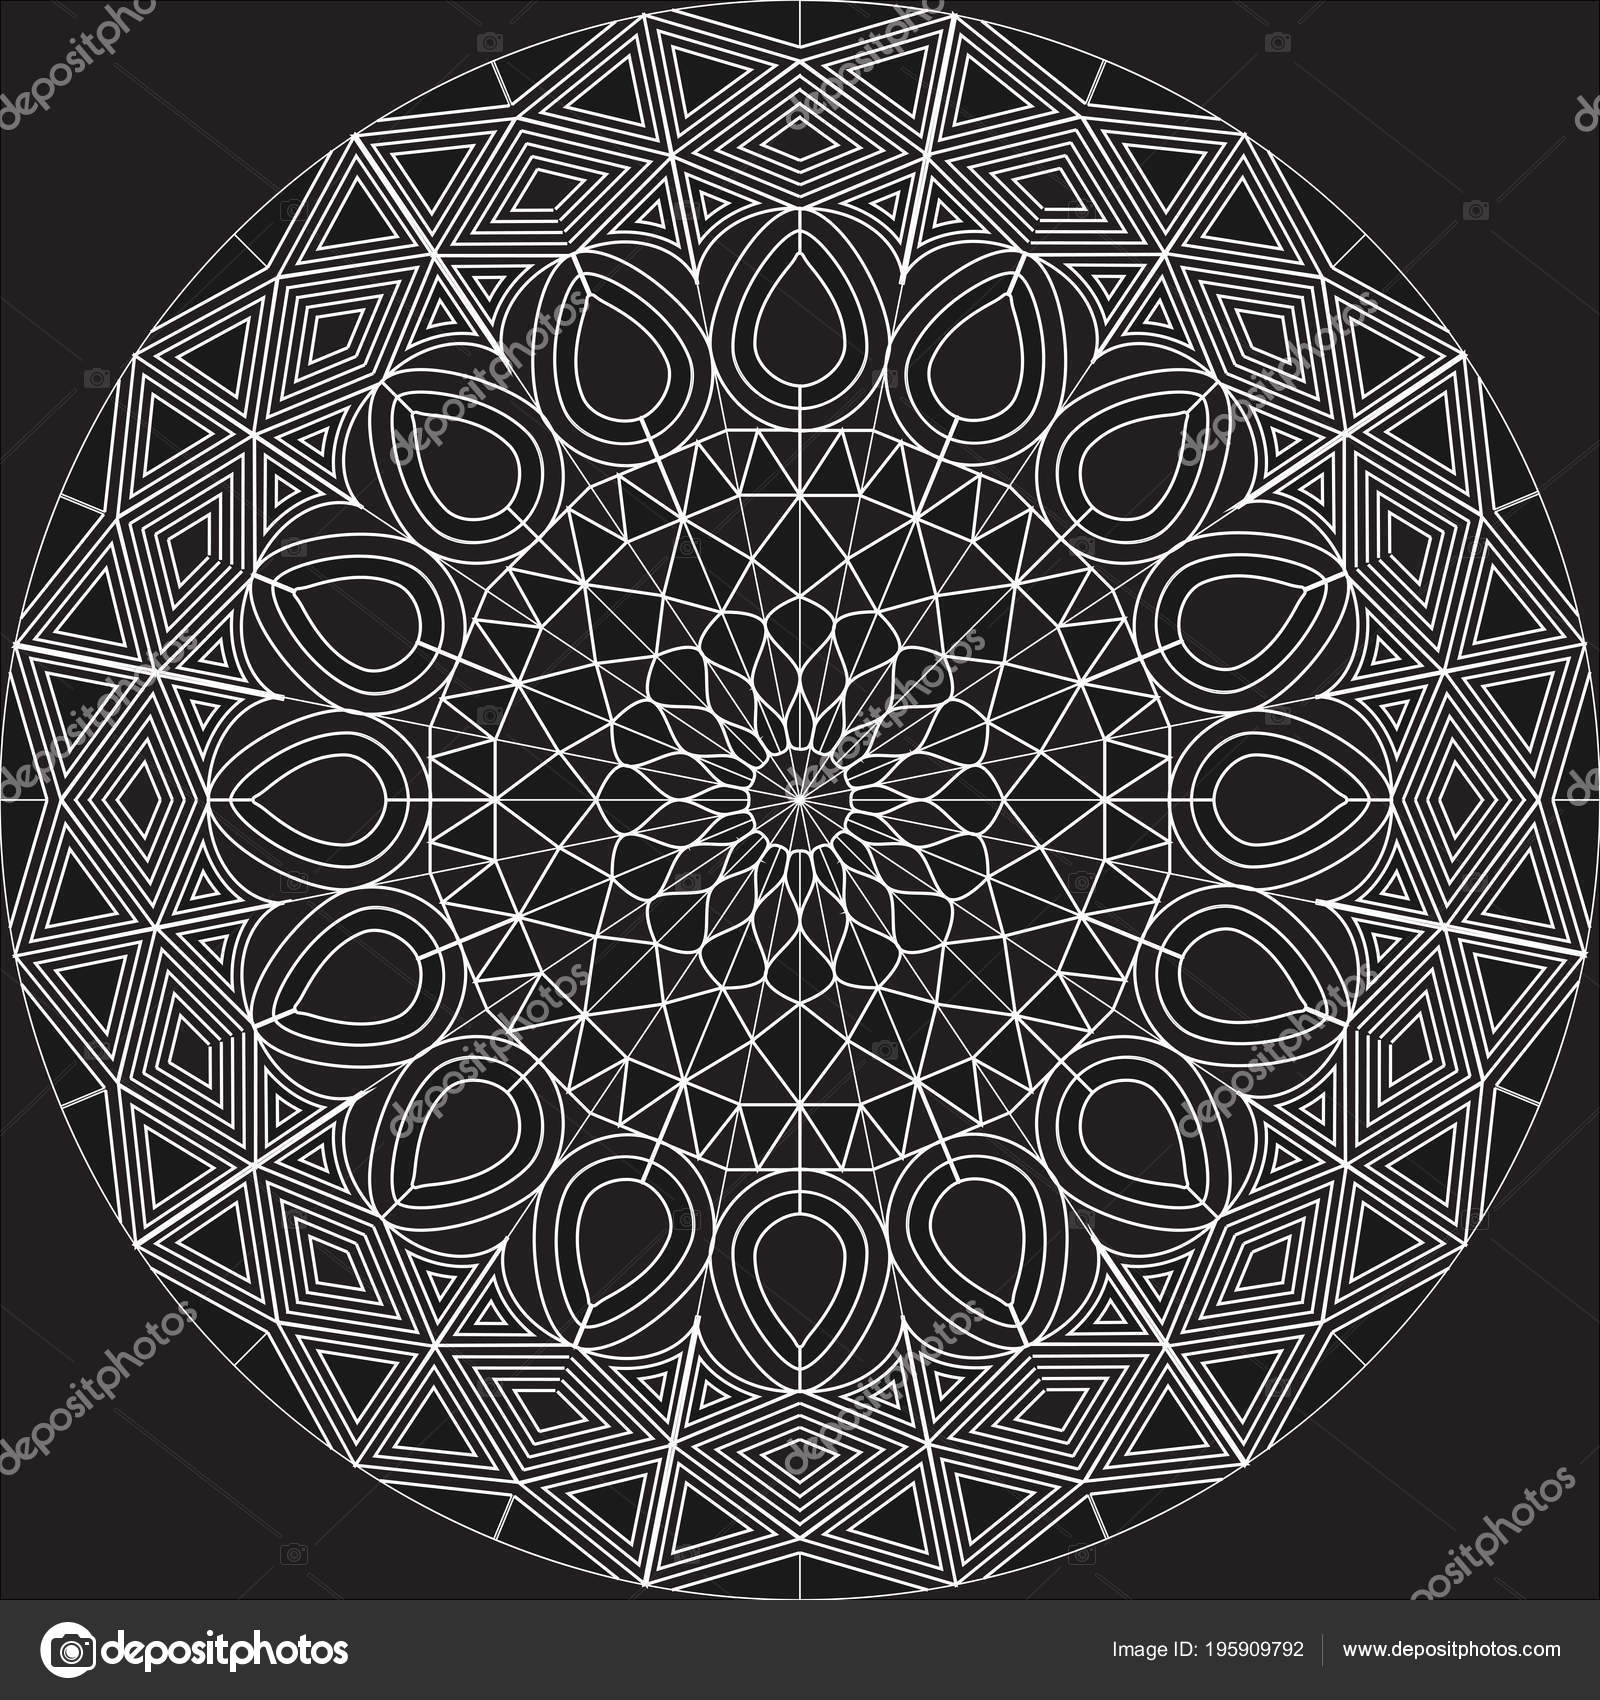 Conception mandala complexe blanc sur fond blanc aide formes base image vectorielle weerawan - Mandala complexe ...